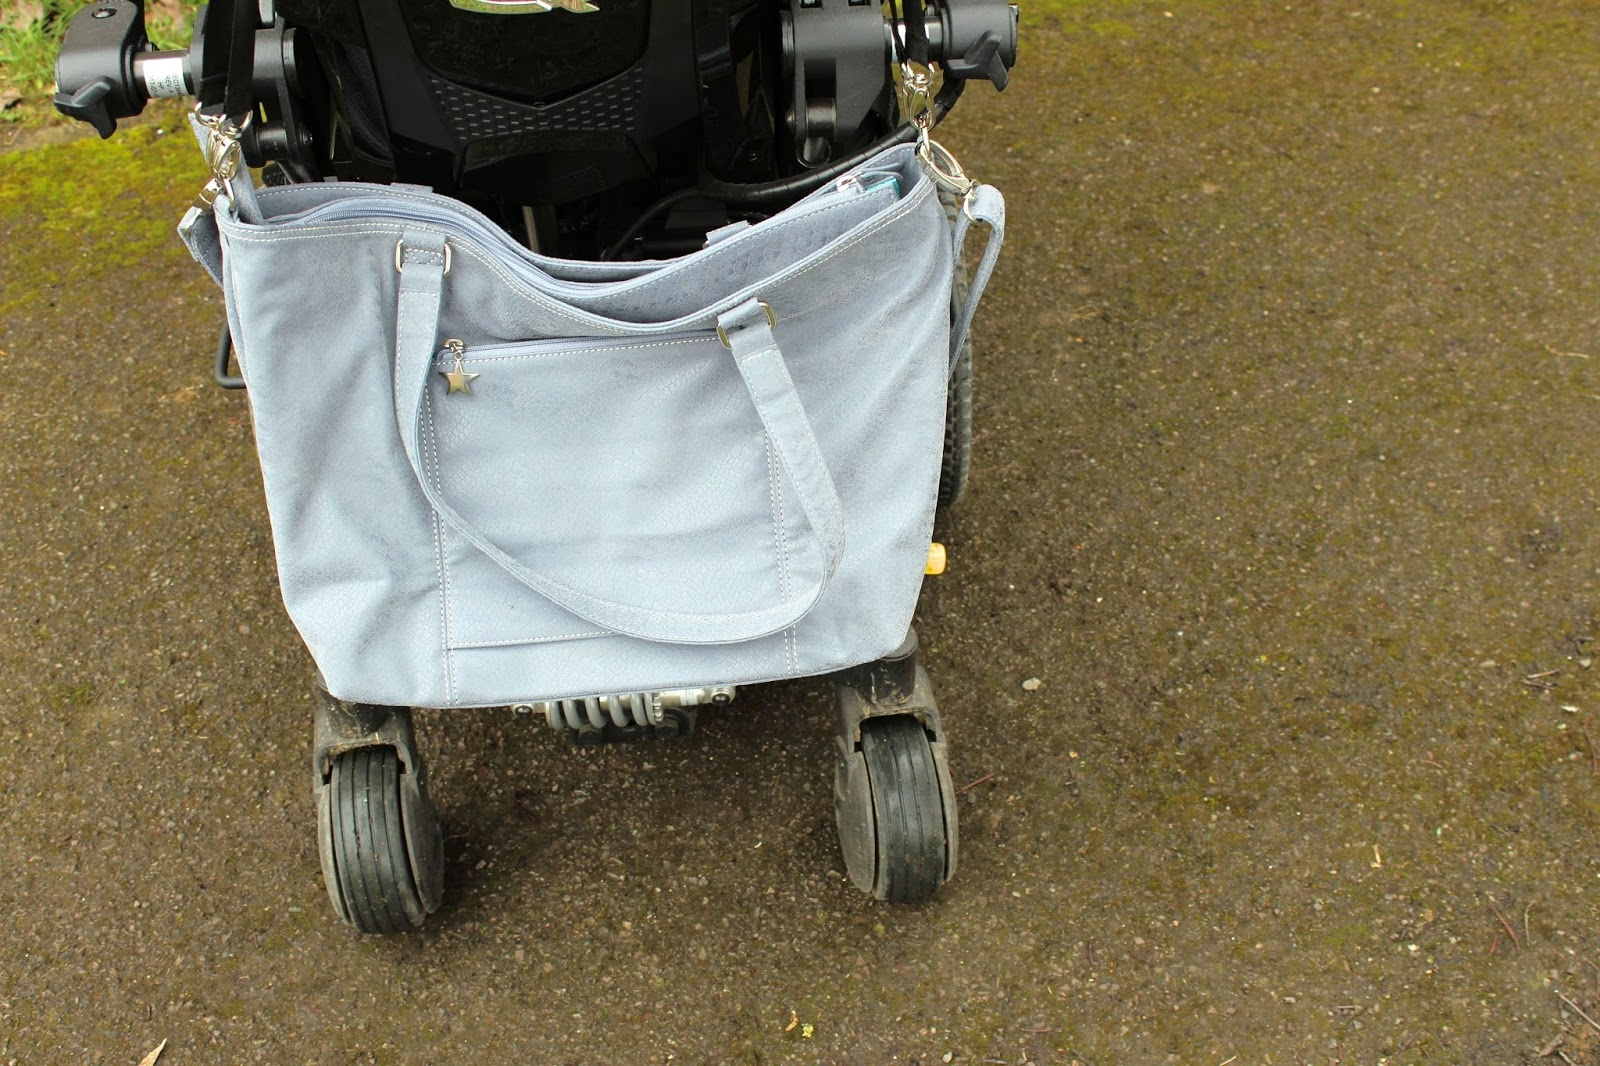 A large grey handbag is visible on the back of the powerchair.